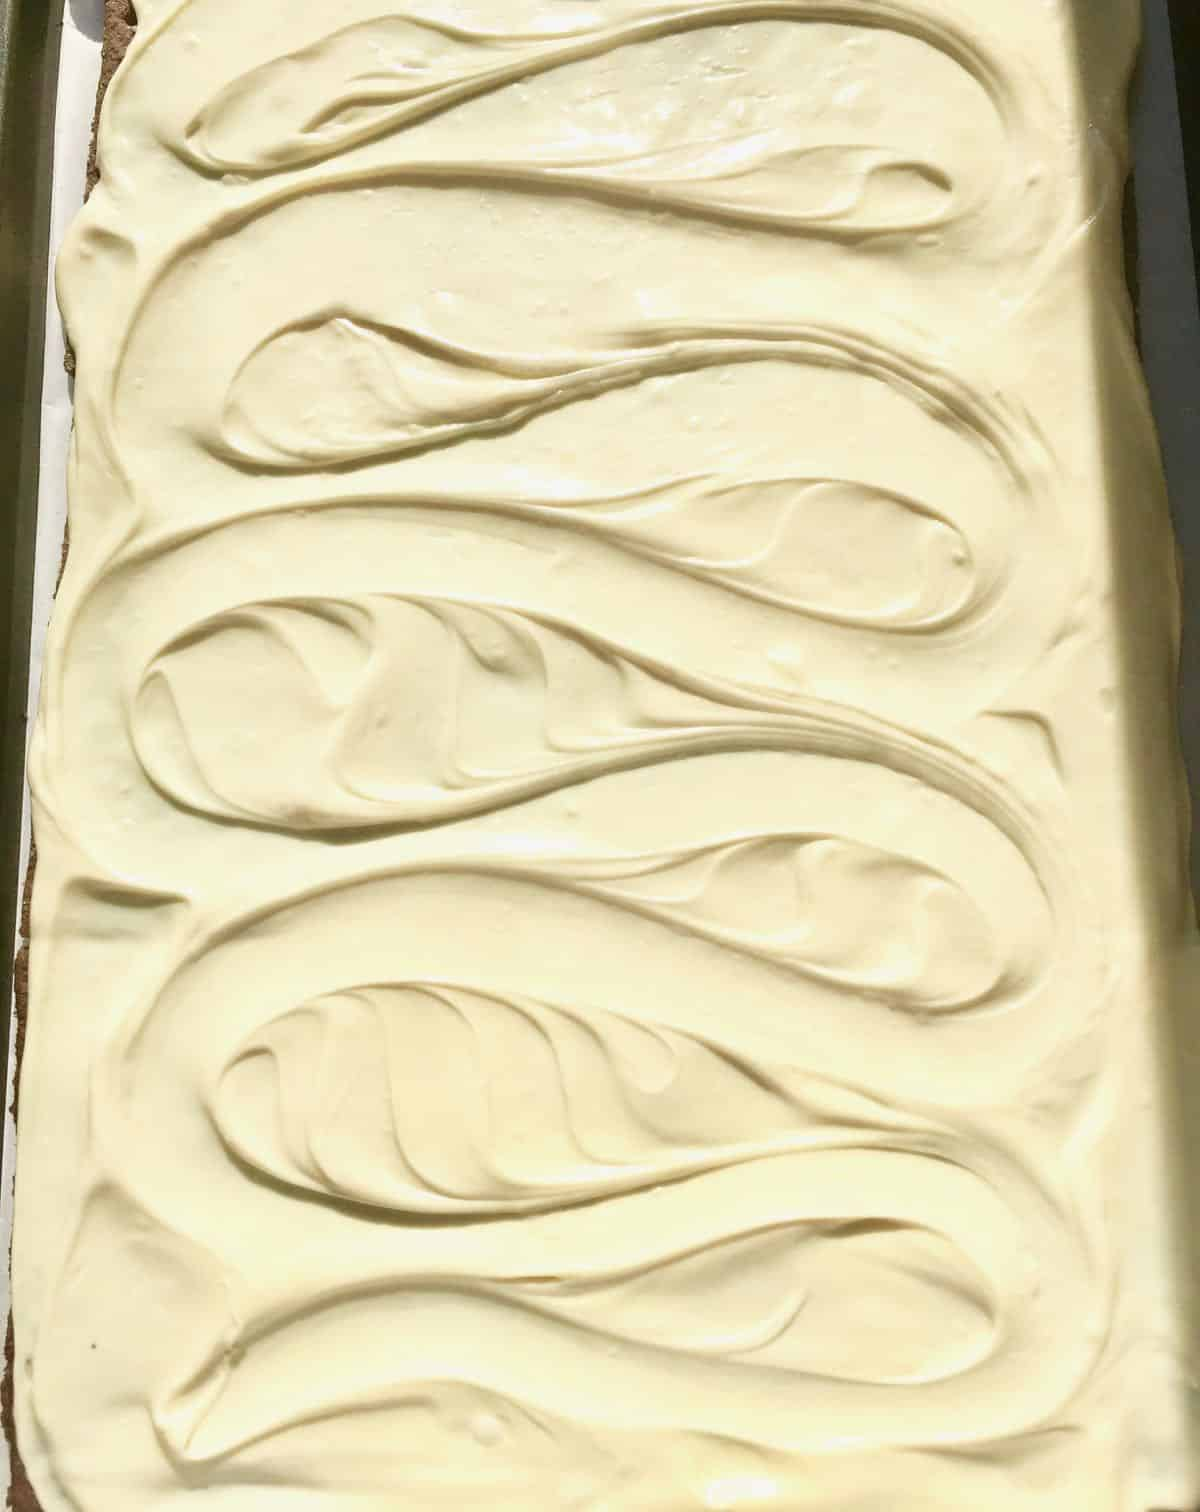 Melted white chocolate spread over graham crackers on a baking sheet.